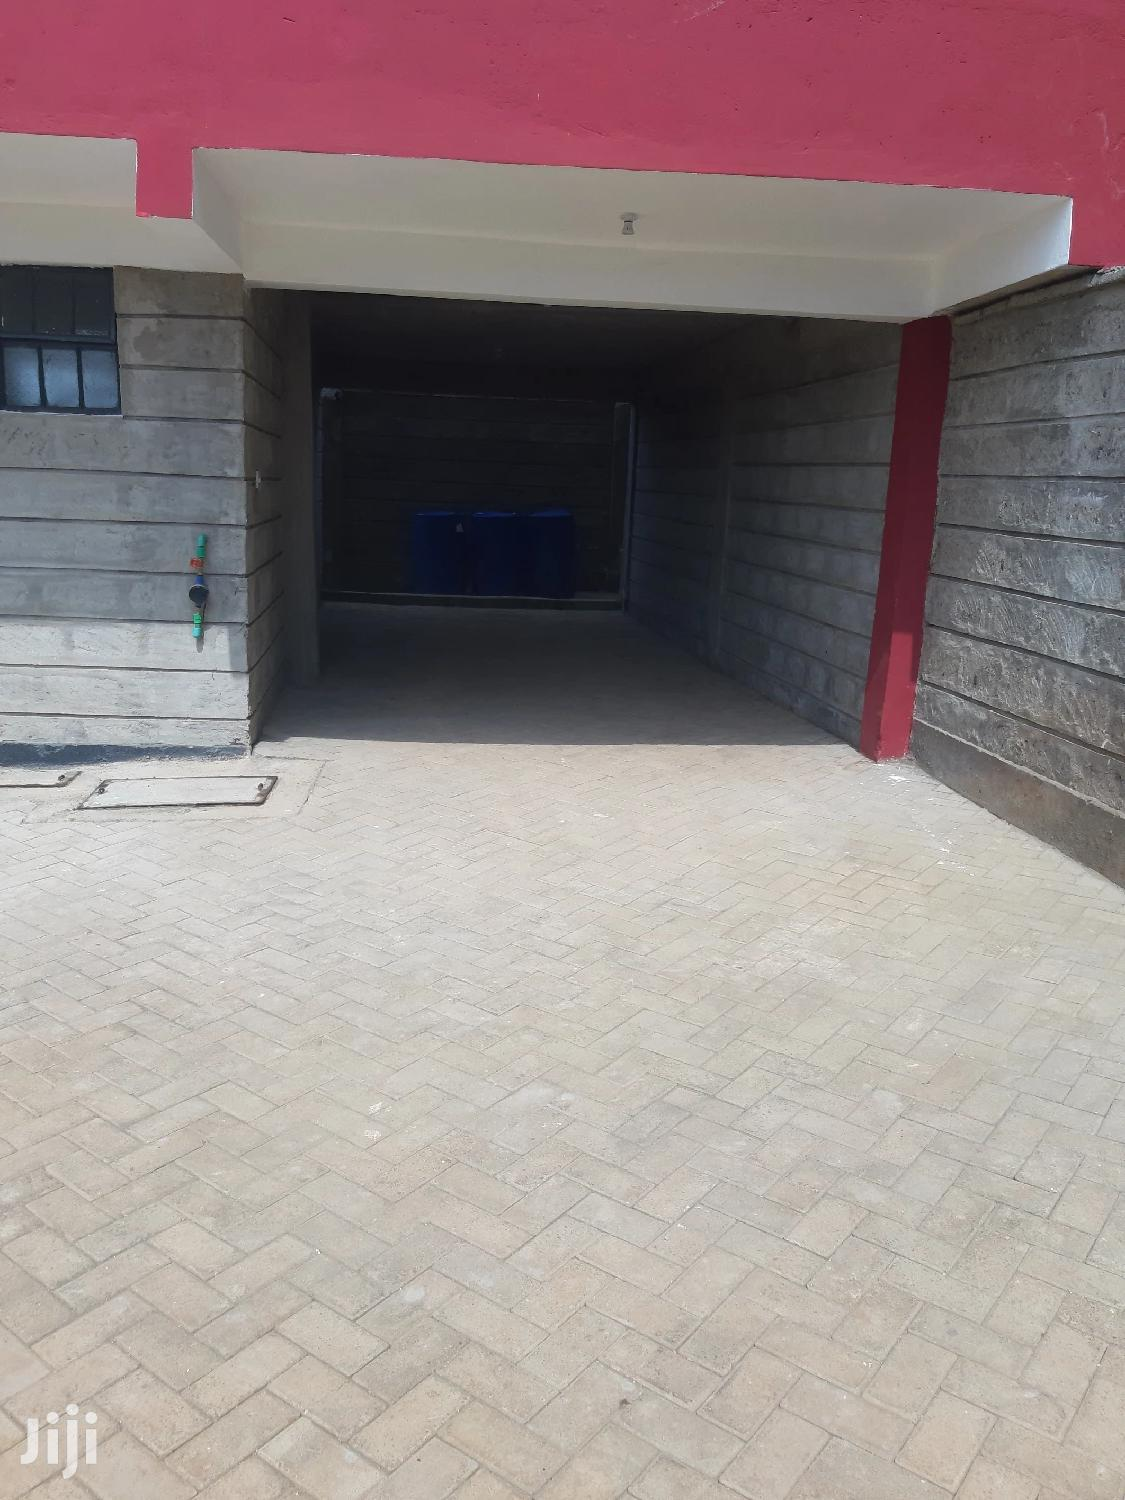 Executive Studio For Rent | Houses & Apartments For Rent for sale in Muchatha, Kiambu, Kenya